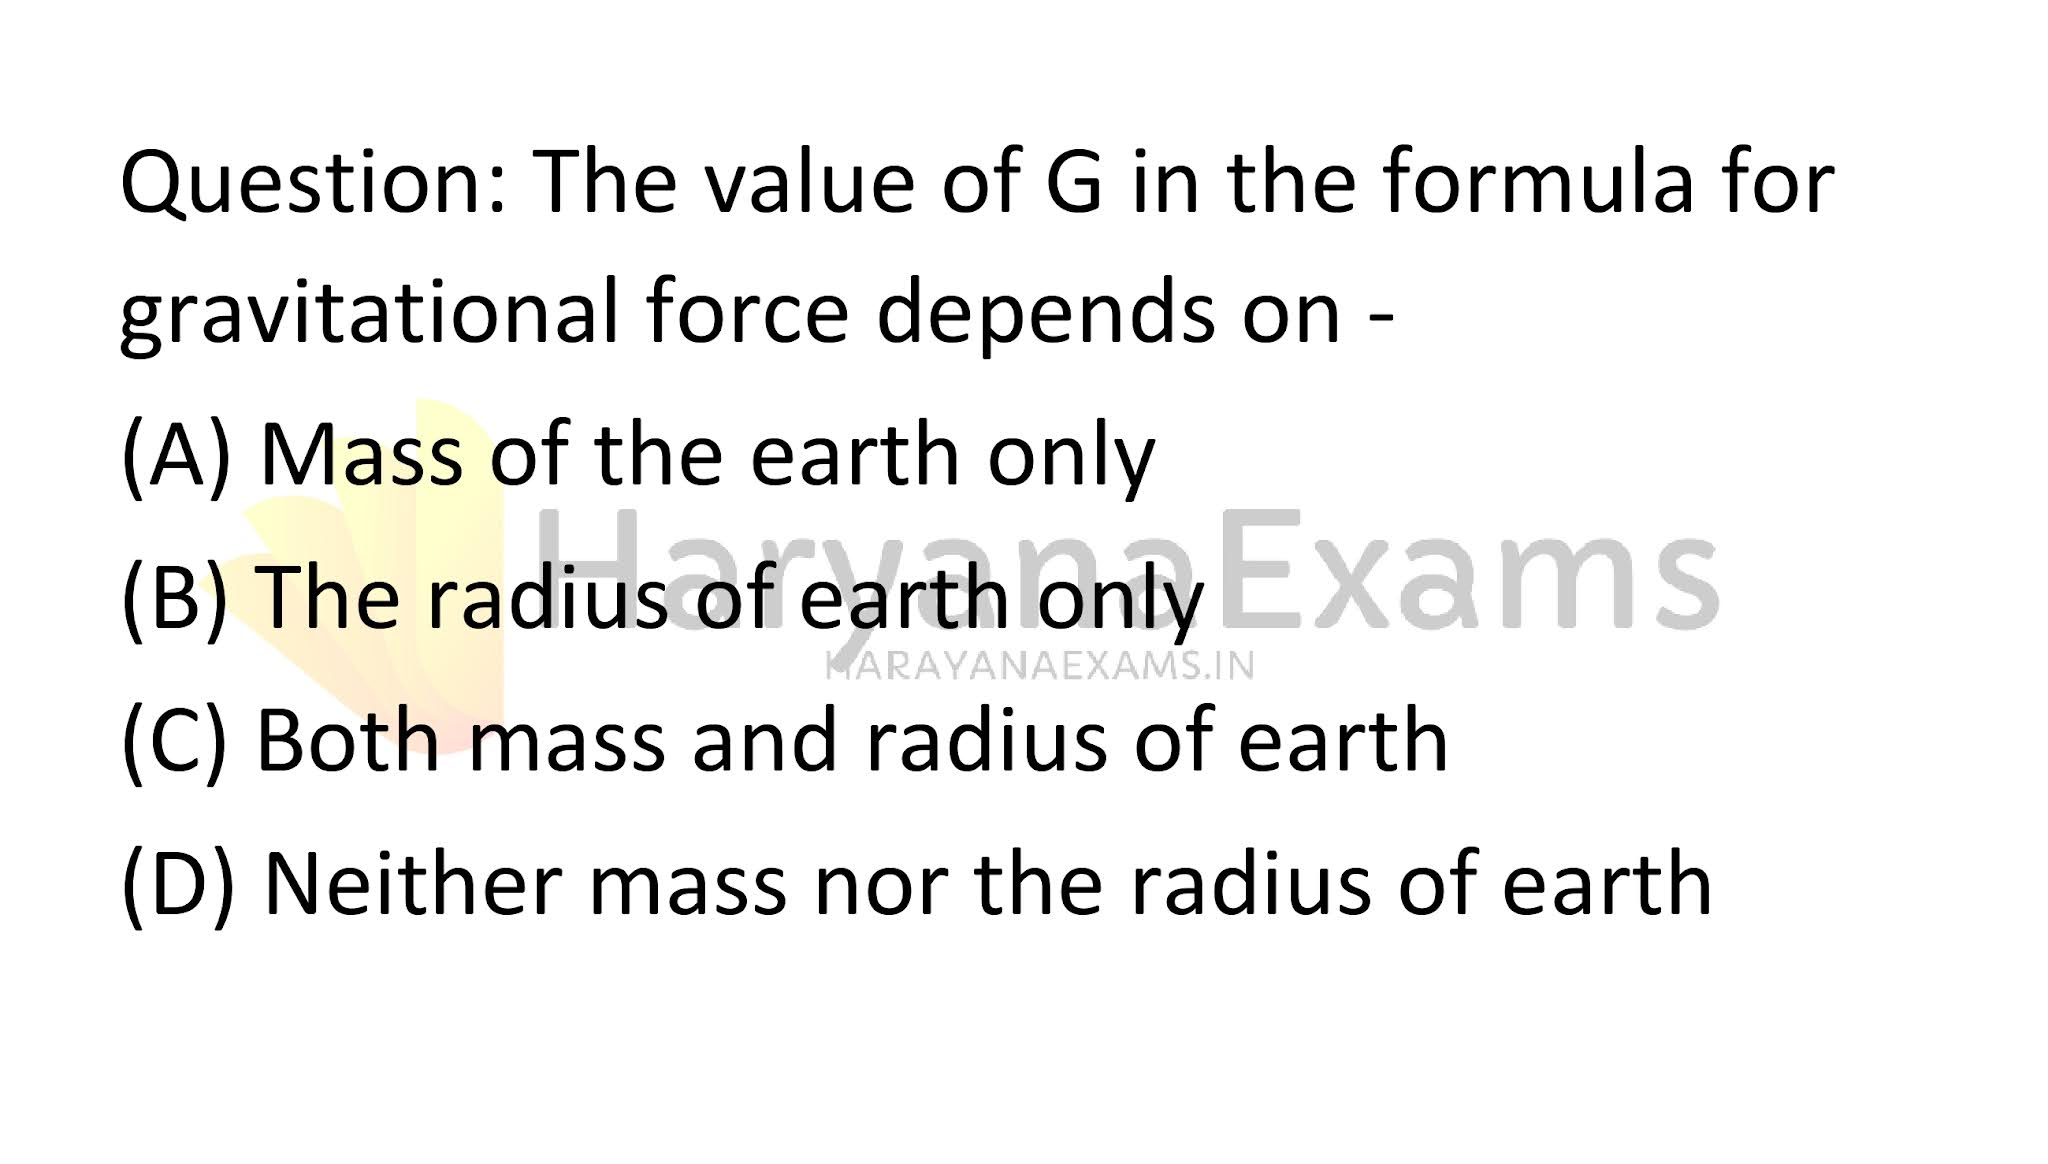 The value of G in the formula for gravitational force depends on -